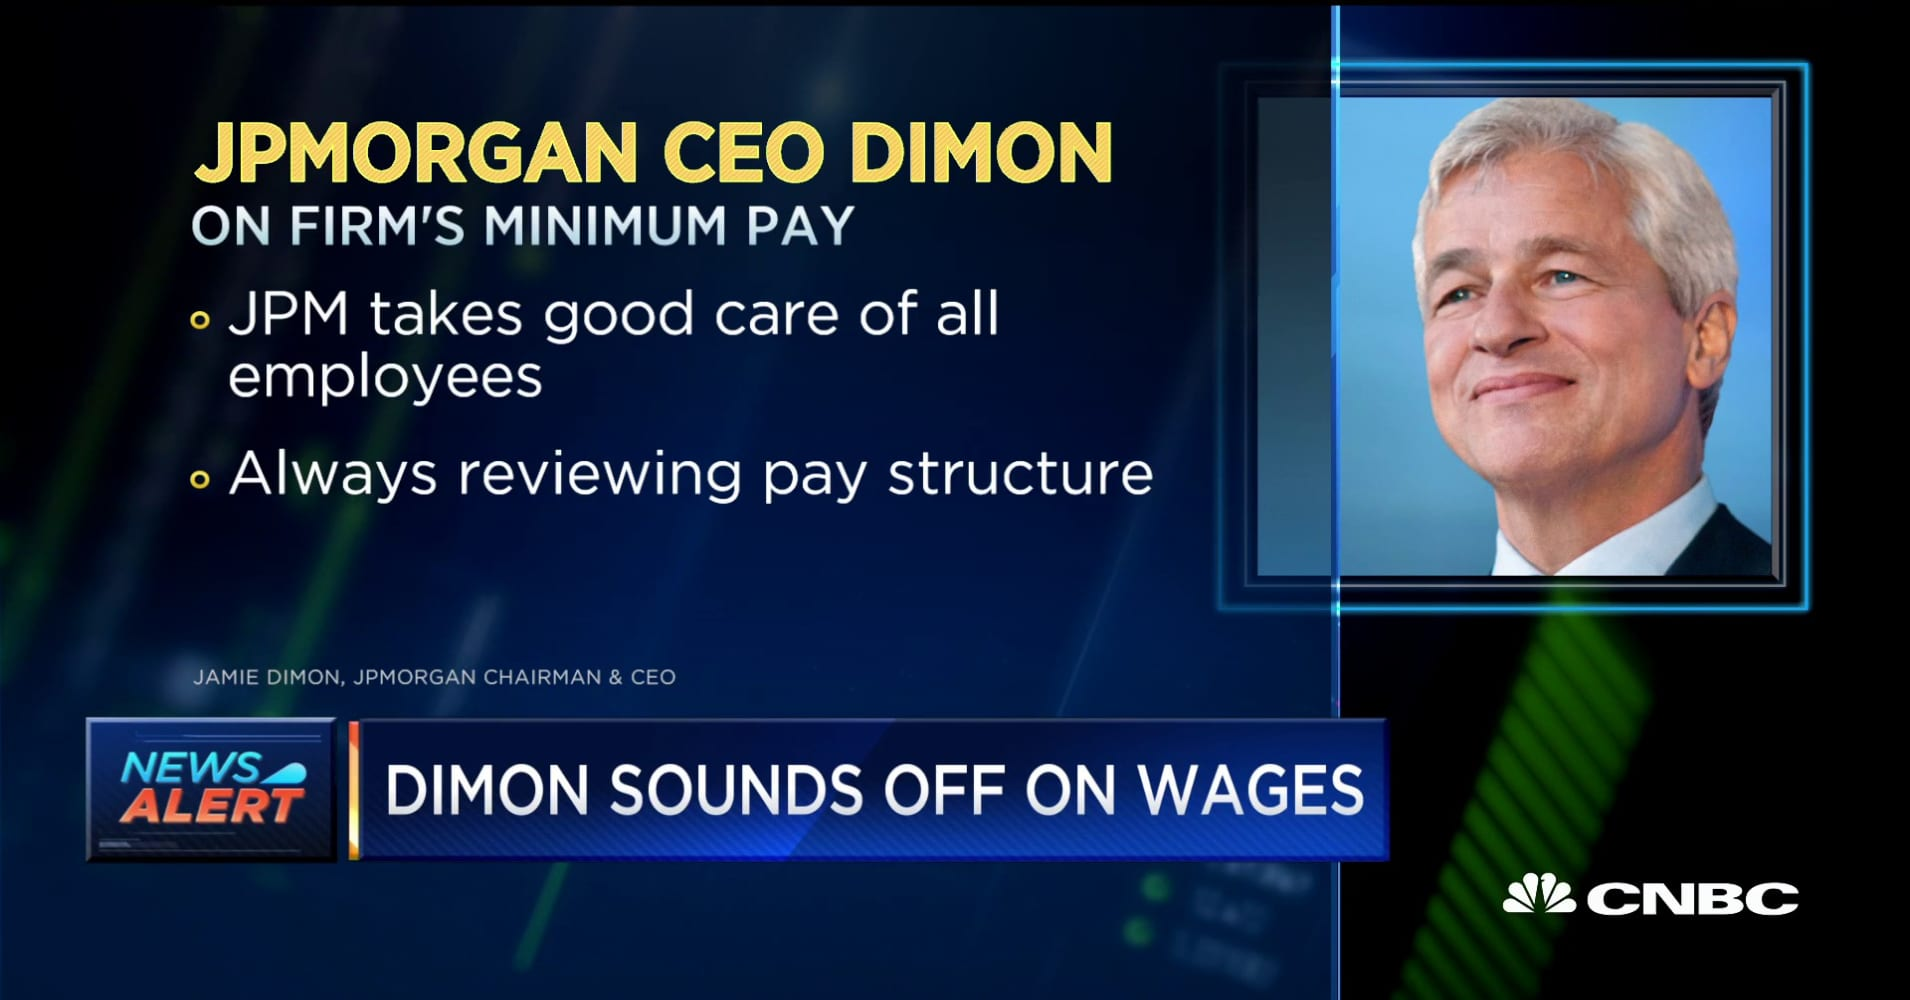 JP Morgan CEO Dimon weighs in on the firm's minimum wage